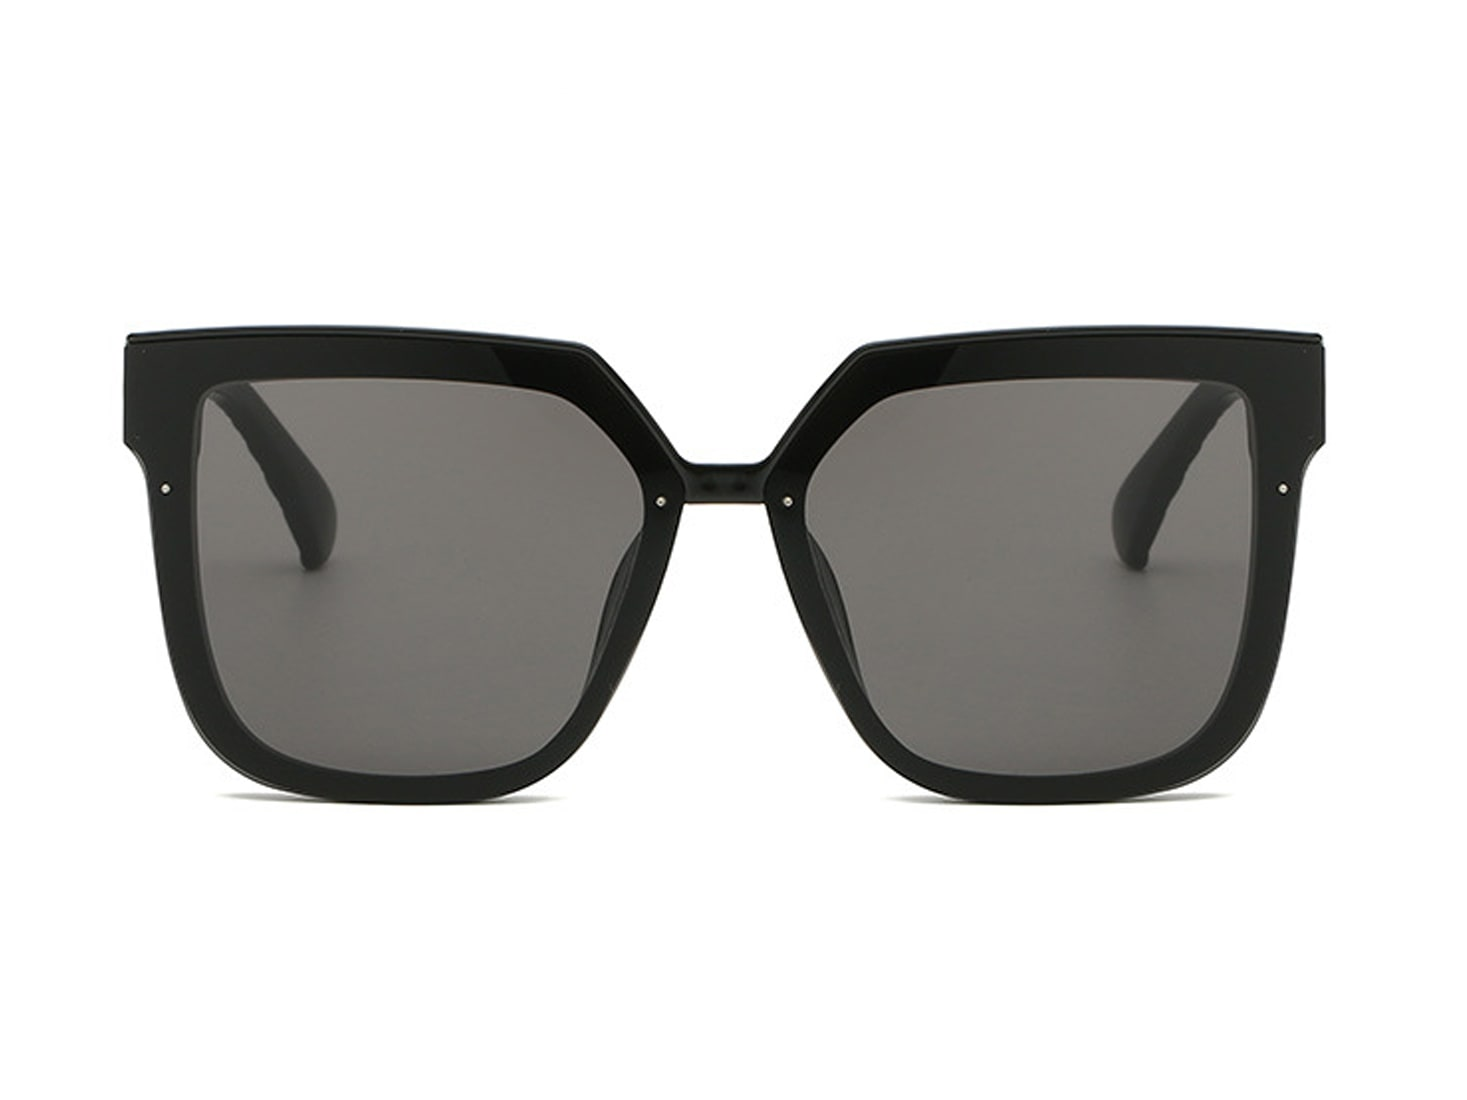 Trailblazer Cat-Eye Shades - Black - Front